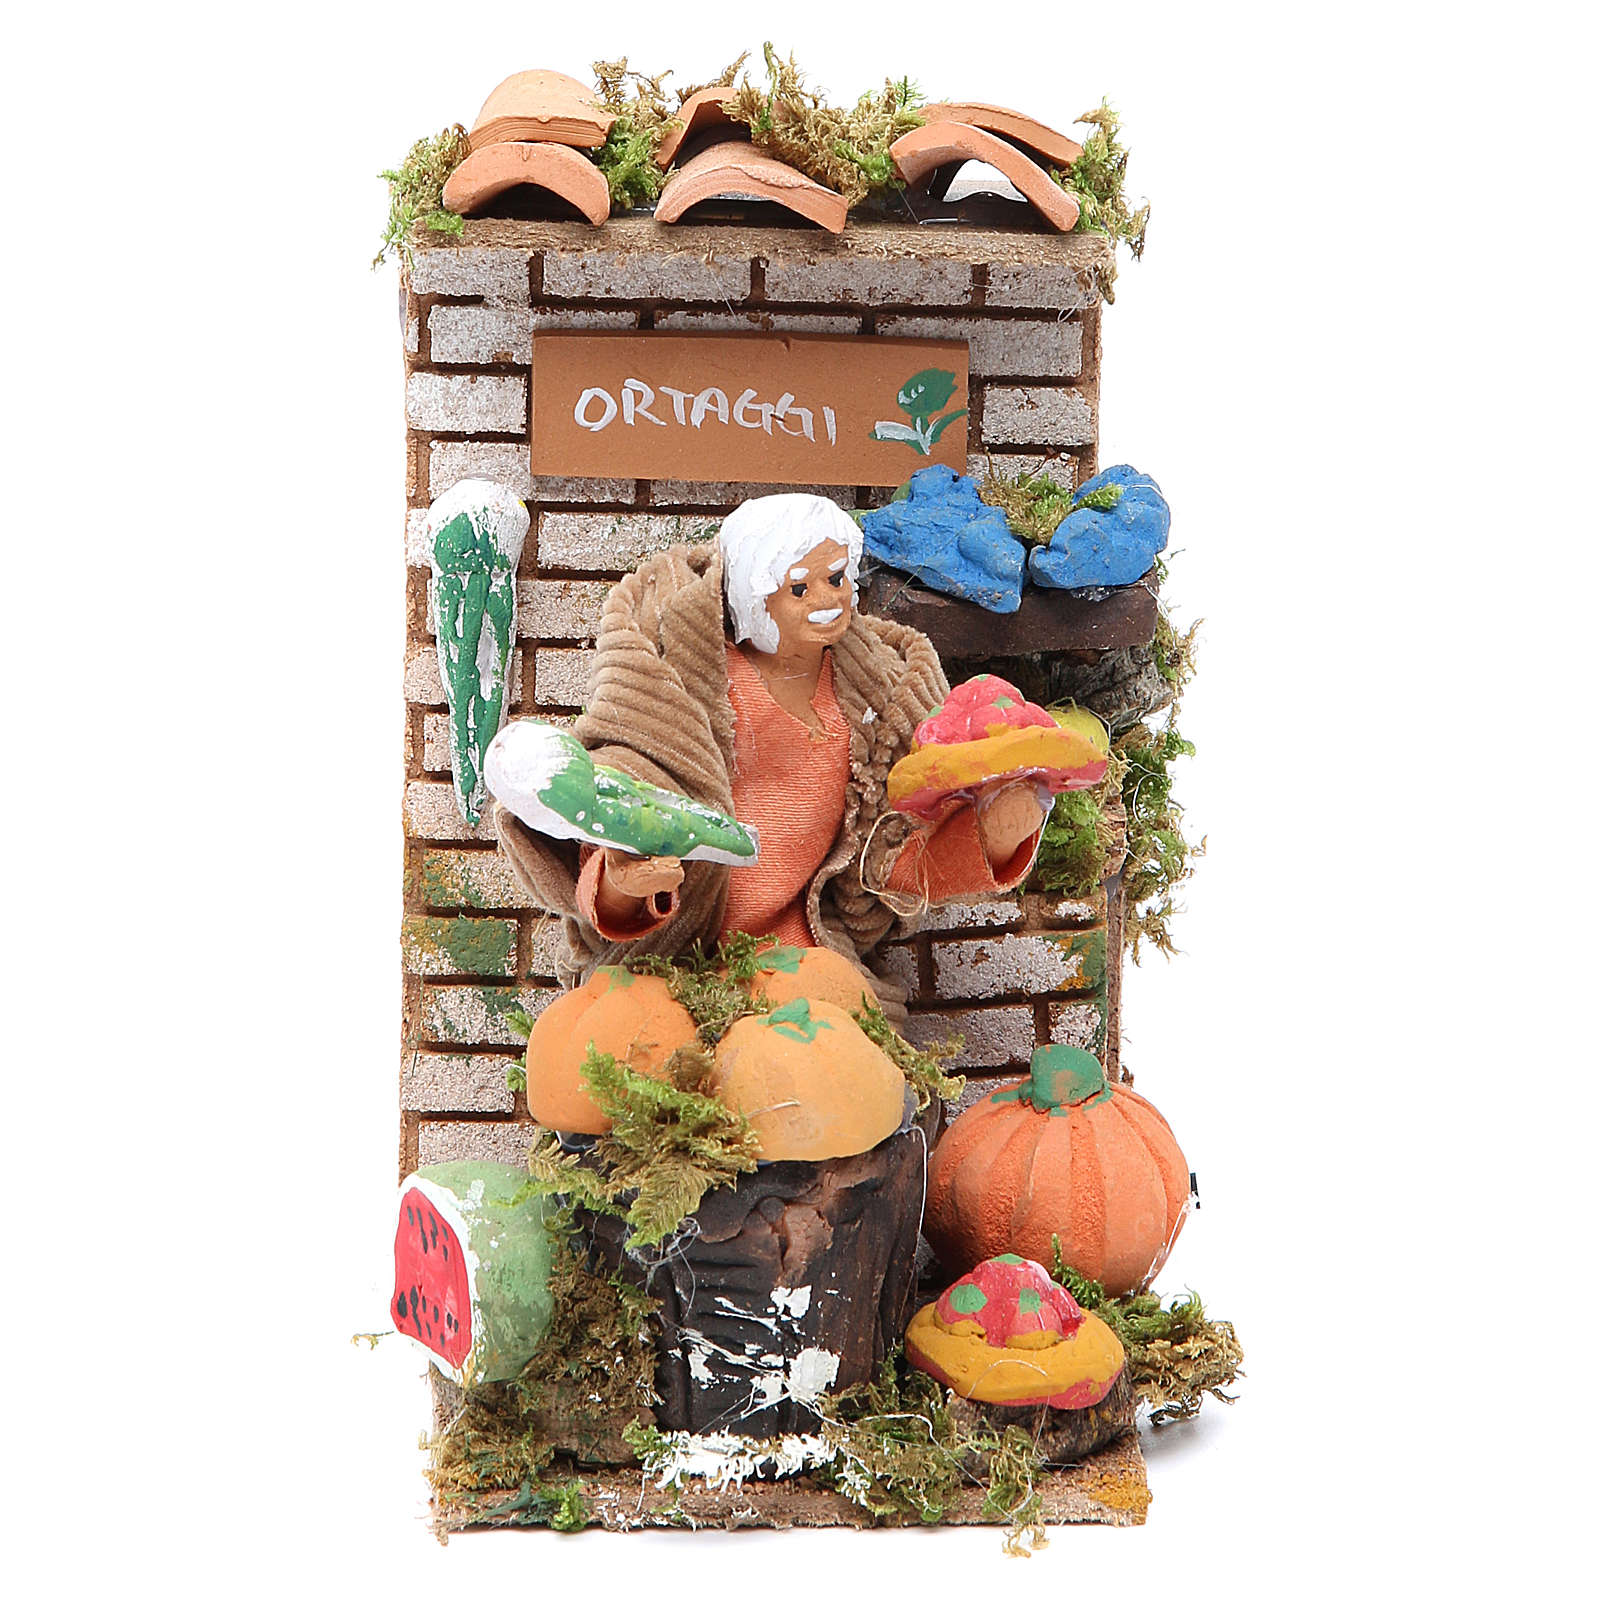 Vegetables stall measuring 10cm, animated nativity figurine 3